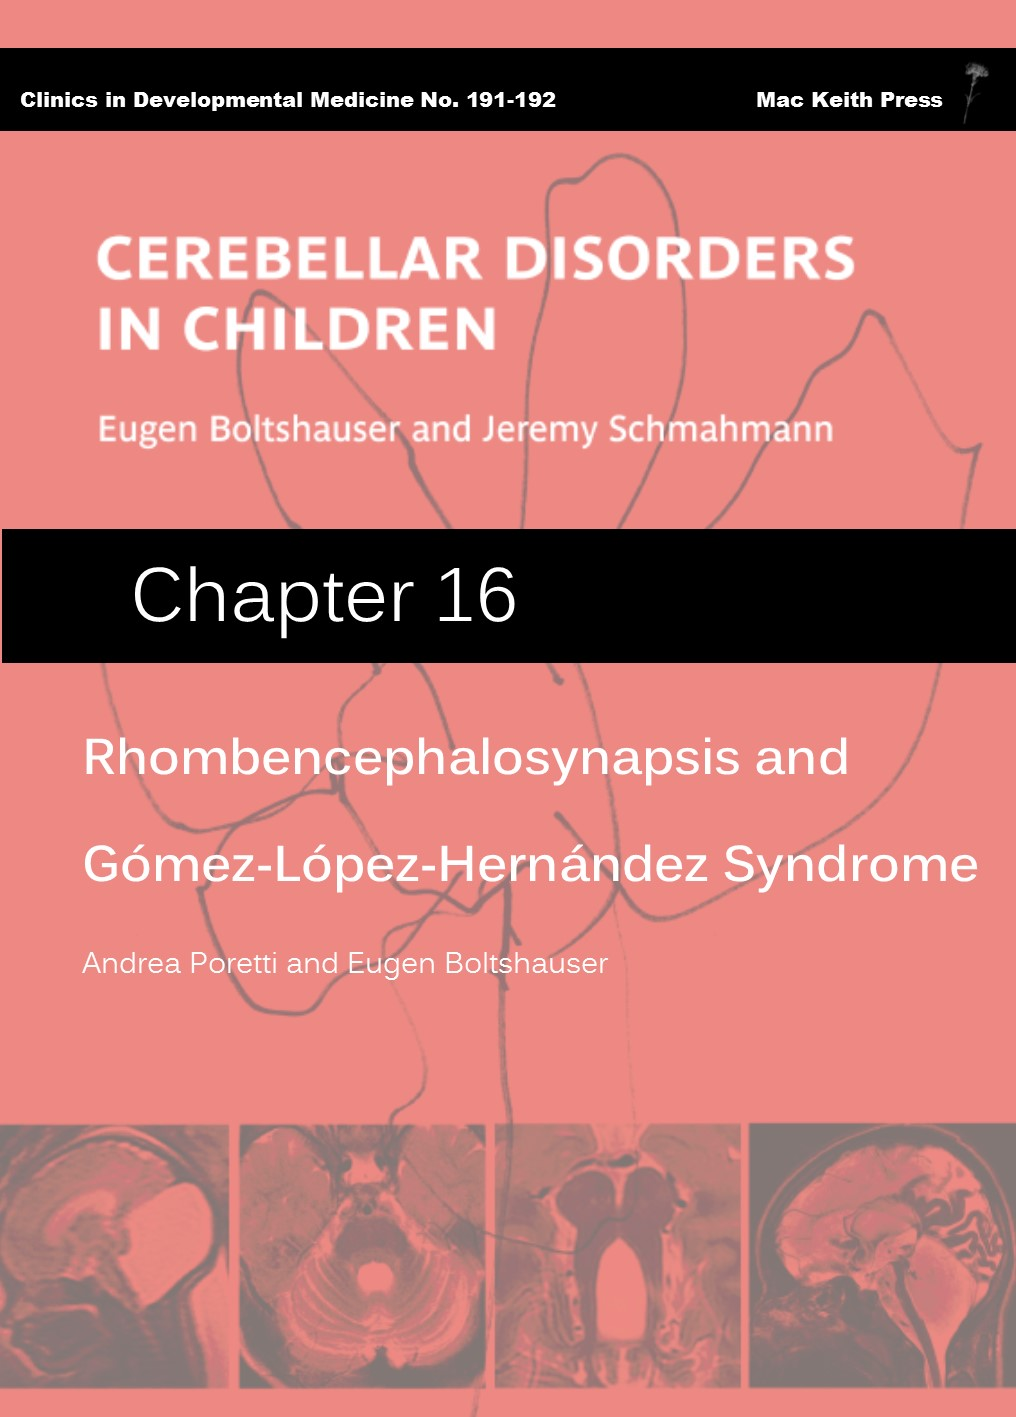 Rhombencephalosynapsis and Gomez-Lopez-Hernandez Syndrome - Cerebellar Disorders in Children (Chapter 16) COVER